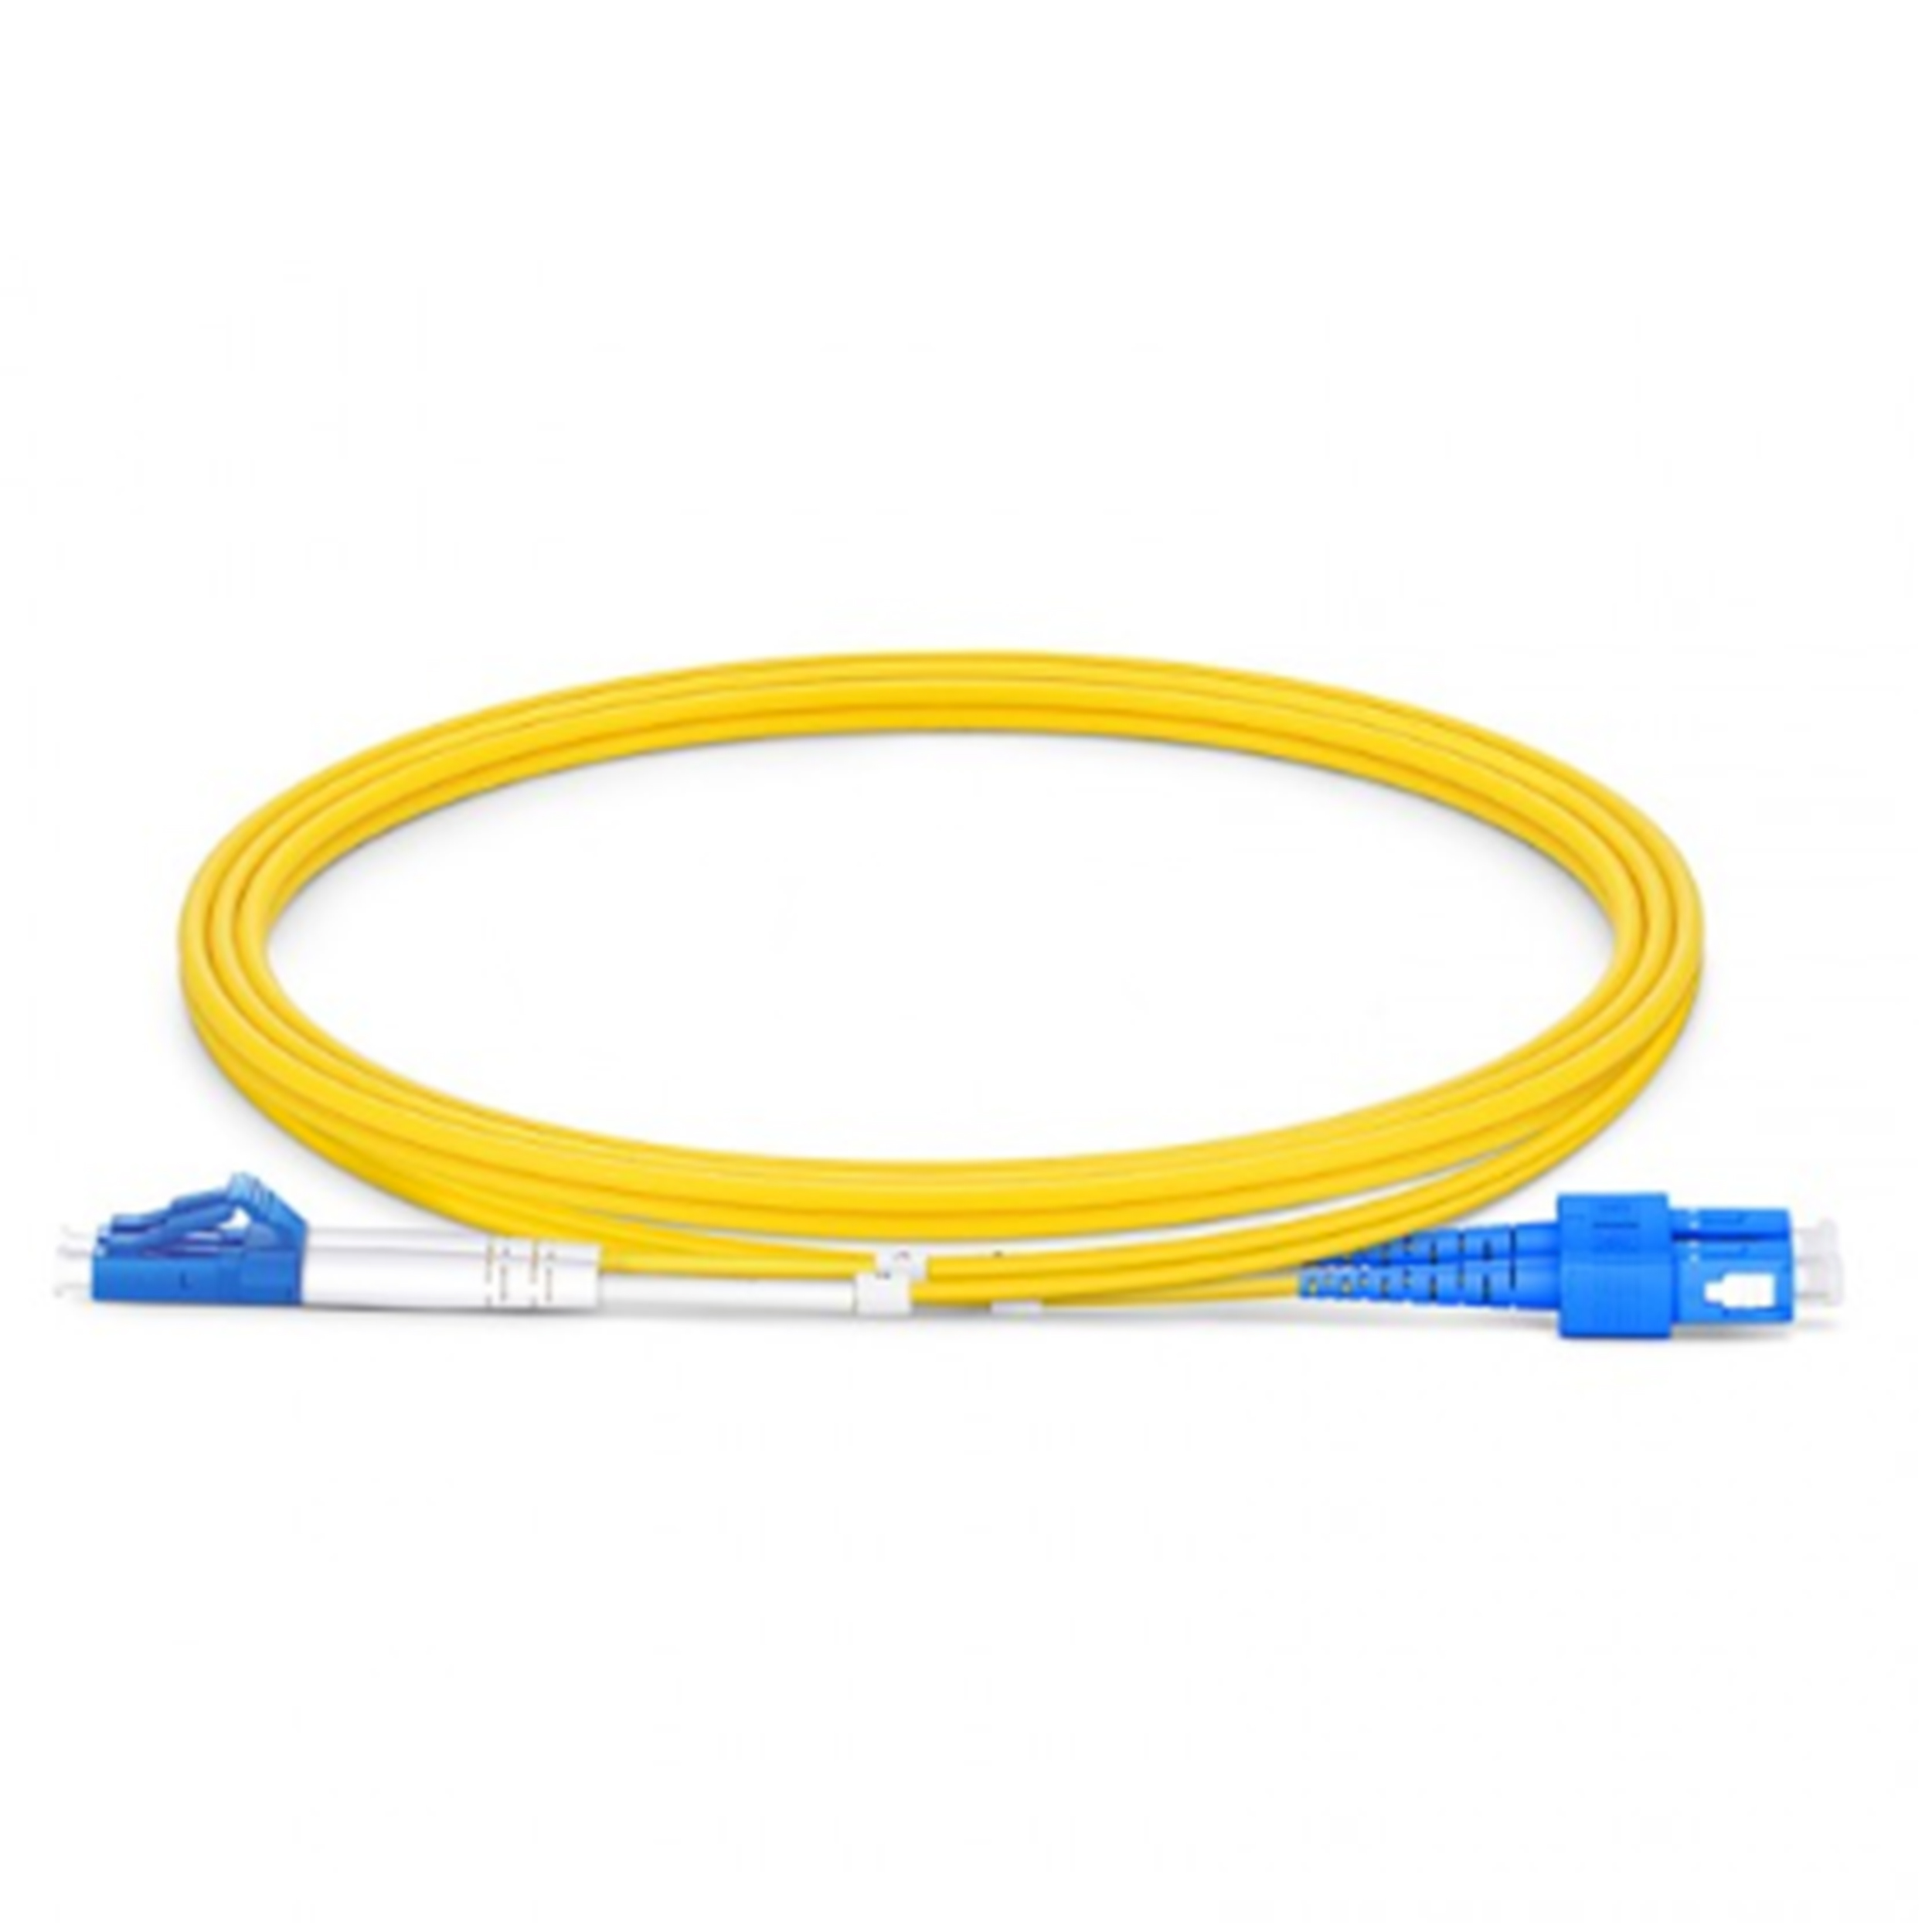 OS2 LC-SC Duplex UPC Fiber Optic Cable (13ft) 4M Yellow